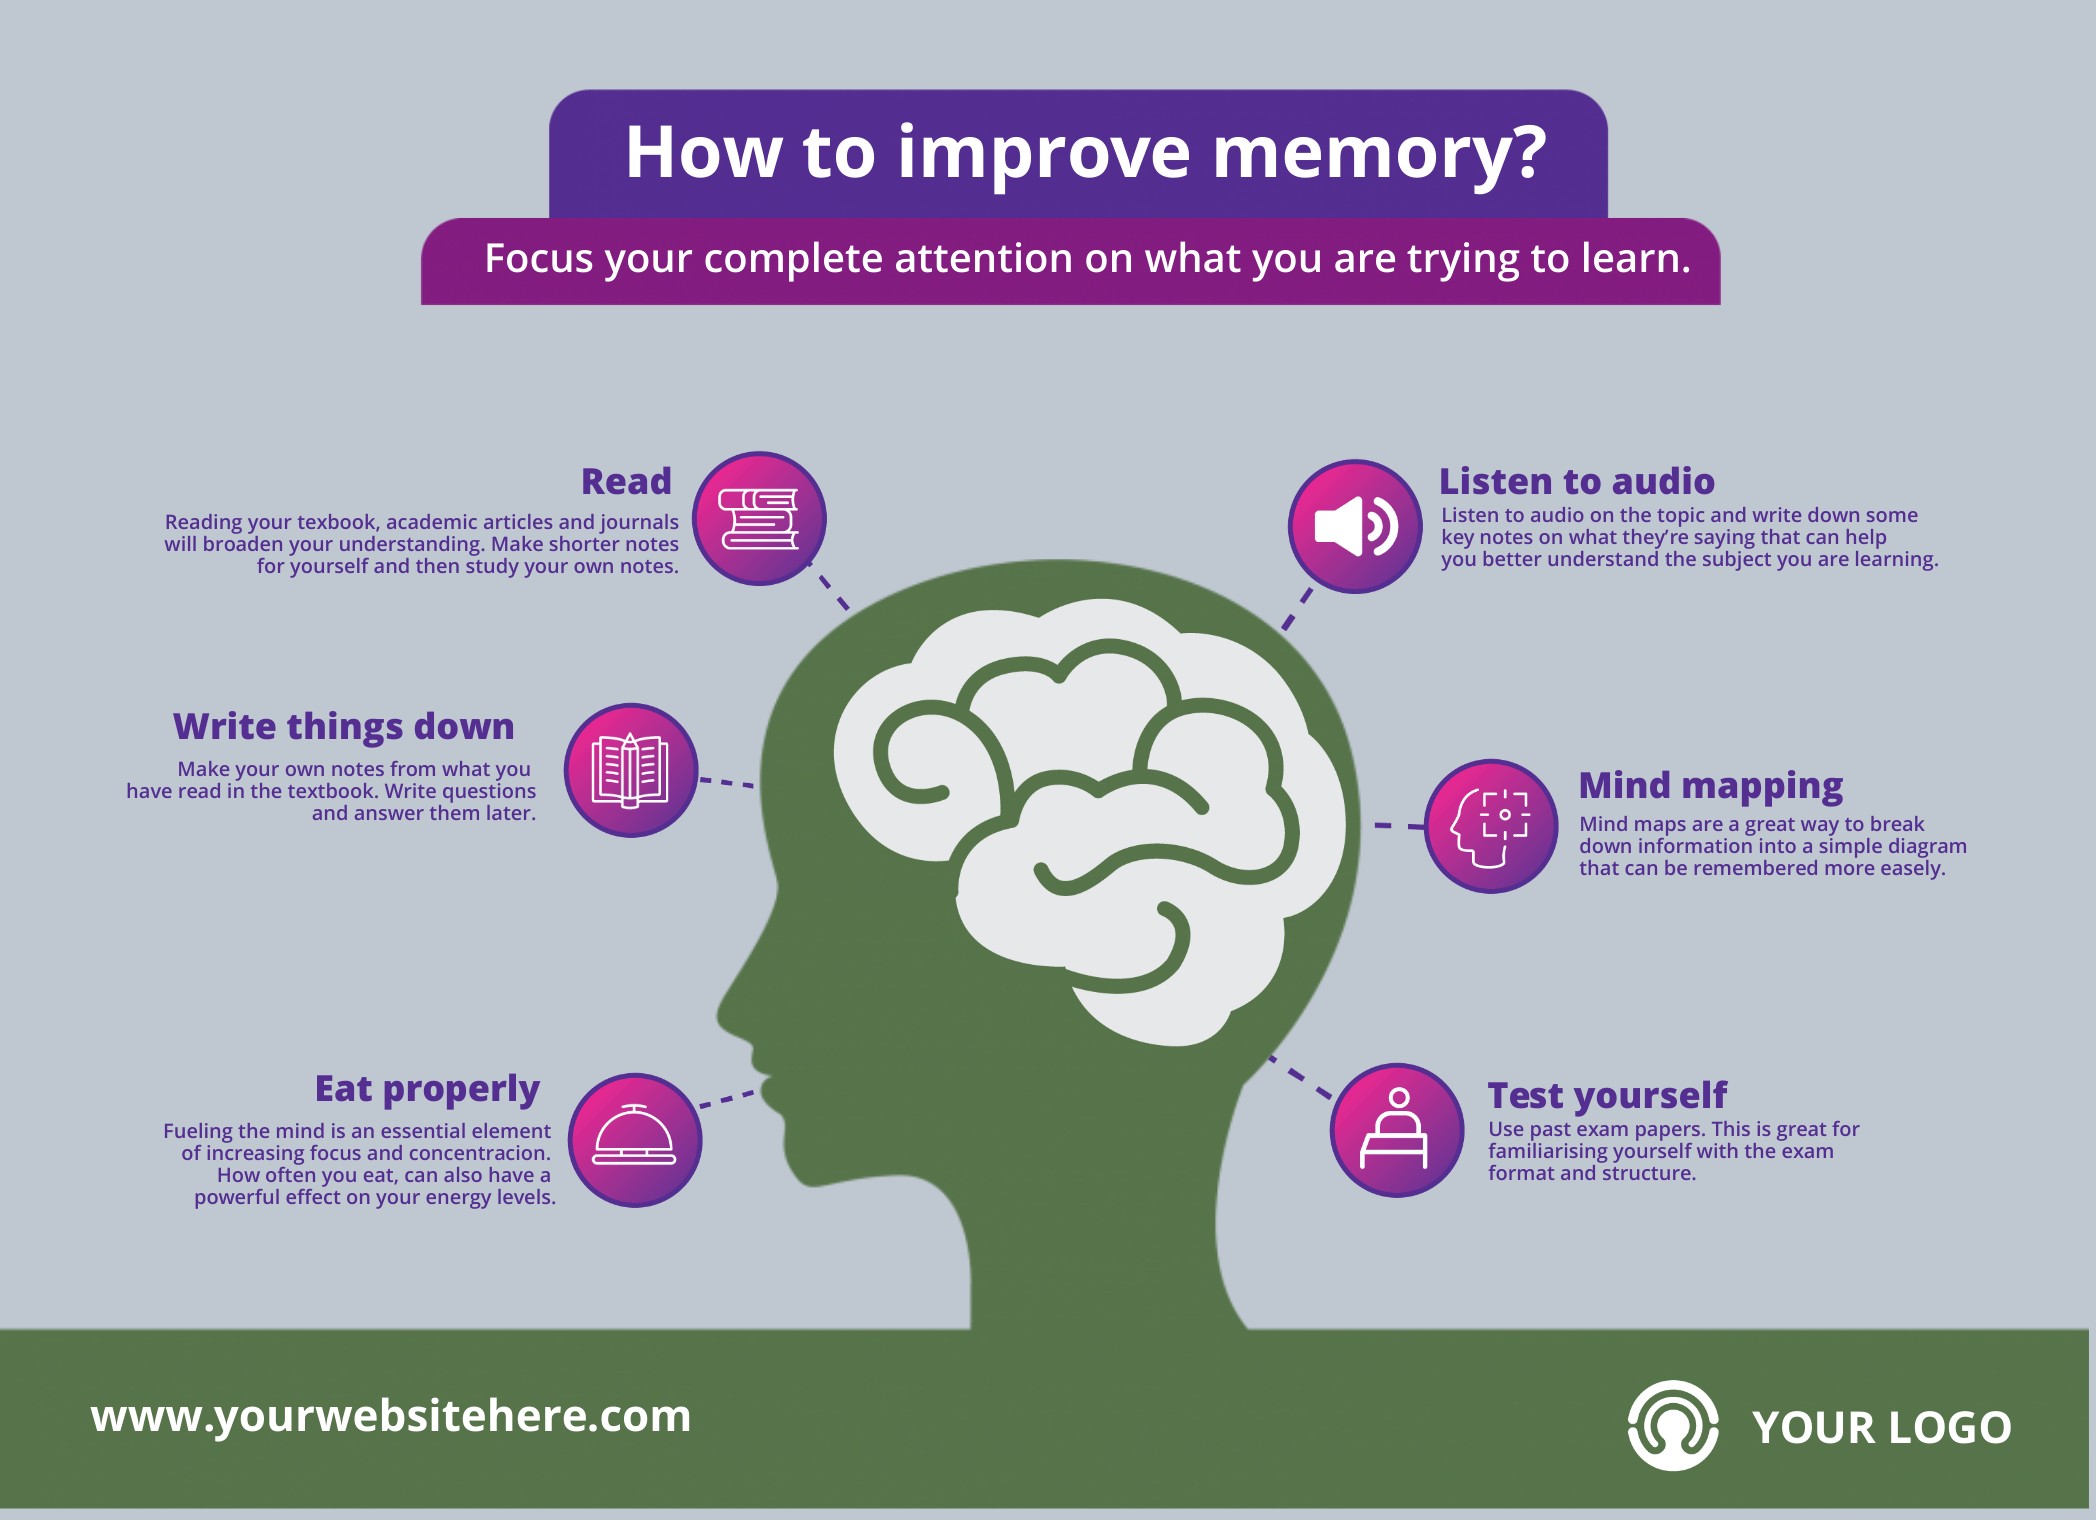 an infographic on how to improve memory which might prove useful during a presentation on the subject